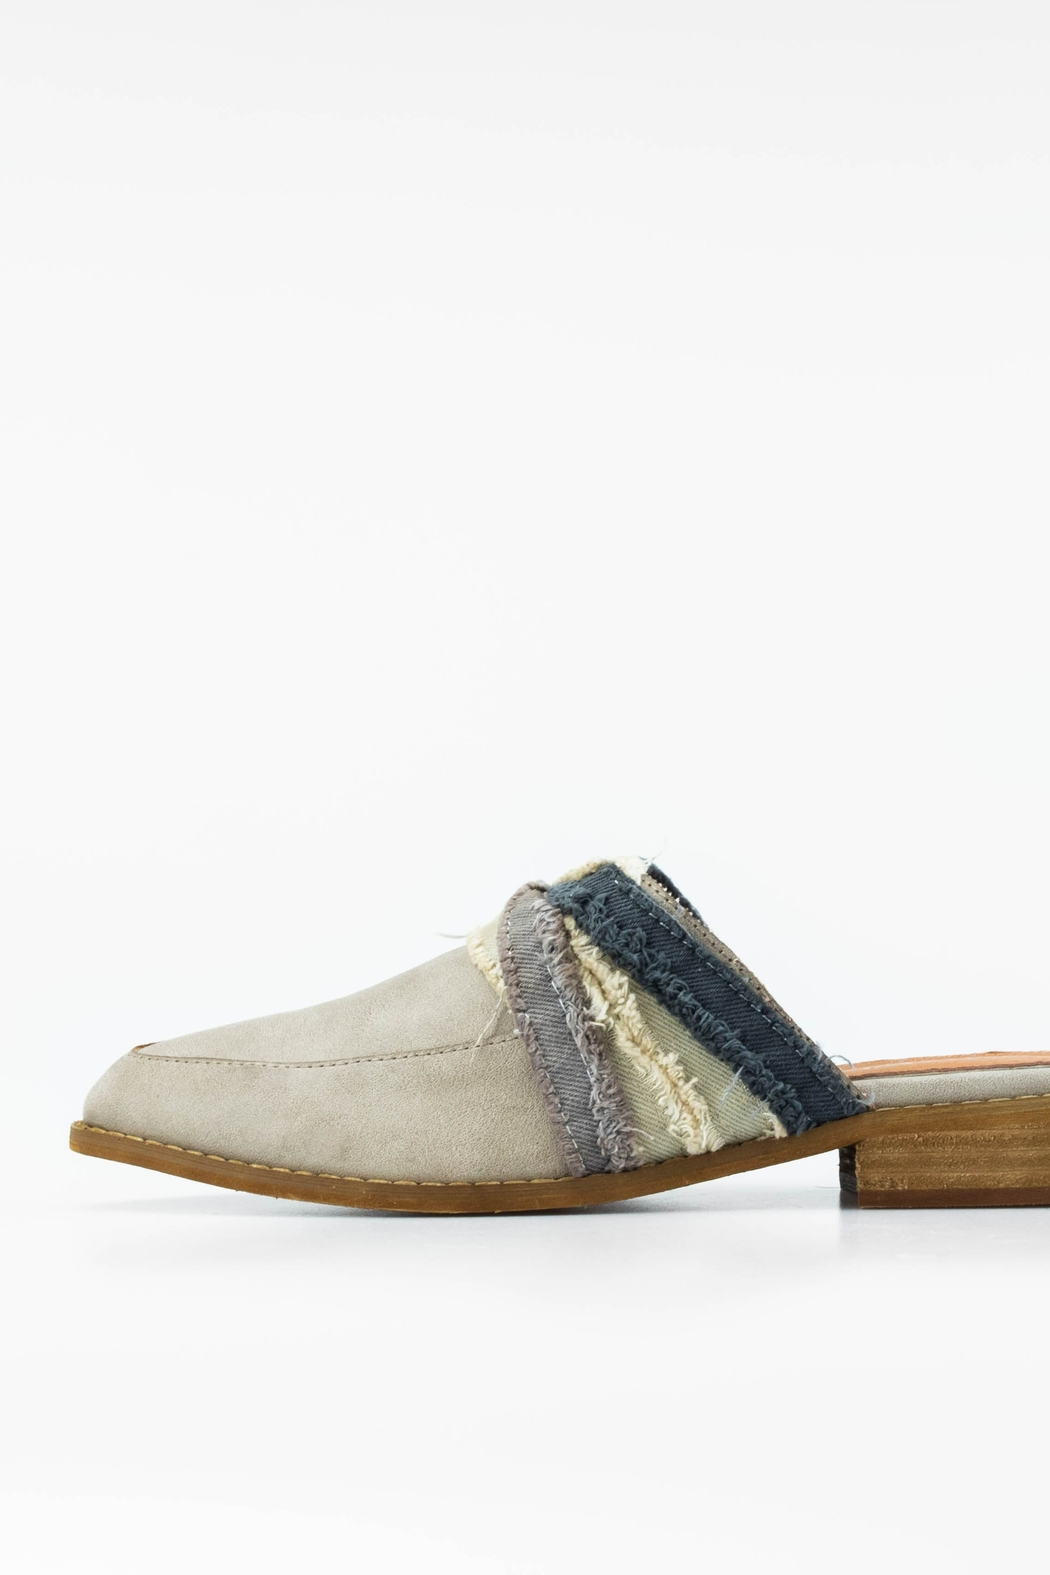 MiiM Fabric Wrapped Vintage Loafer/Mule - Main Image